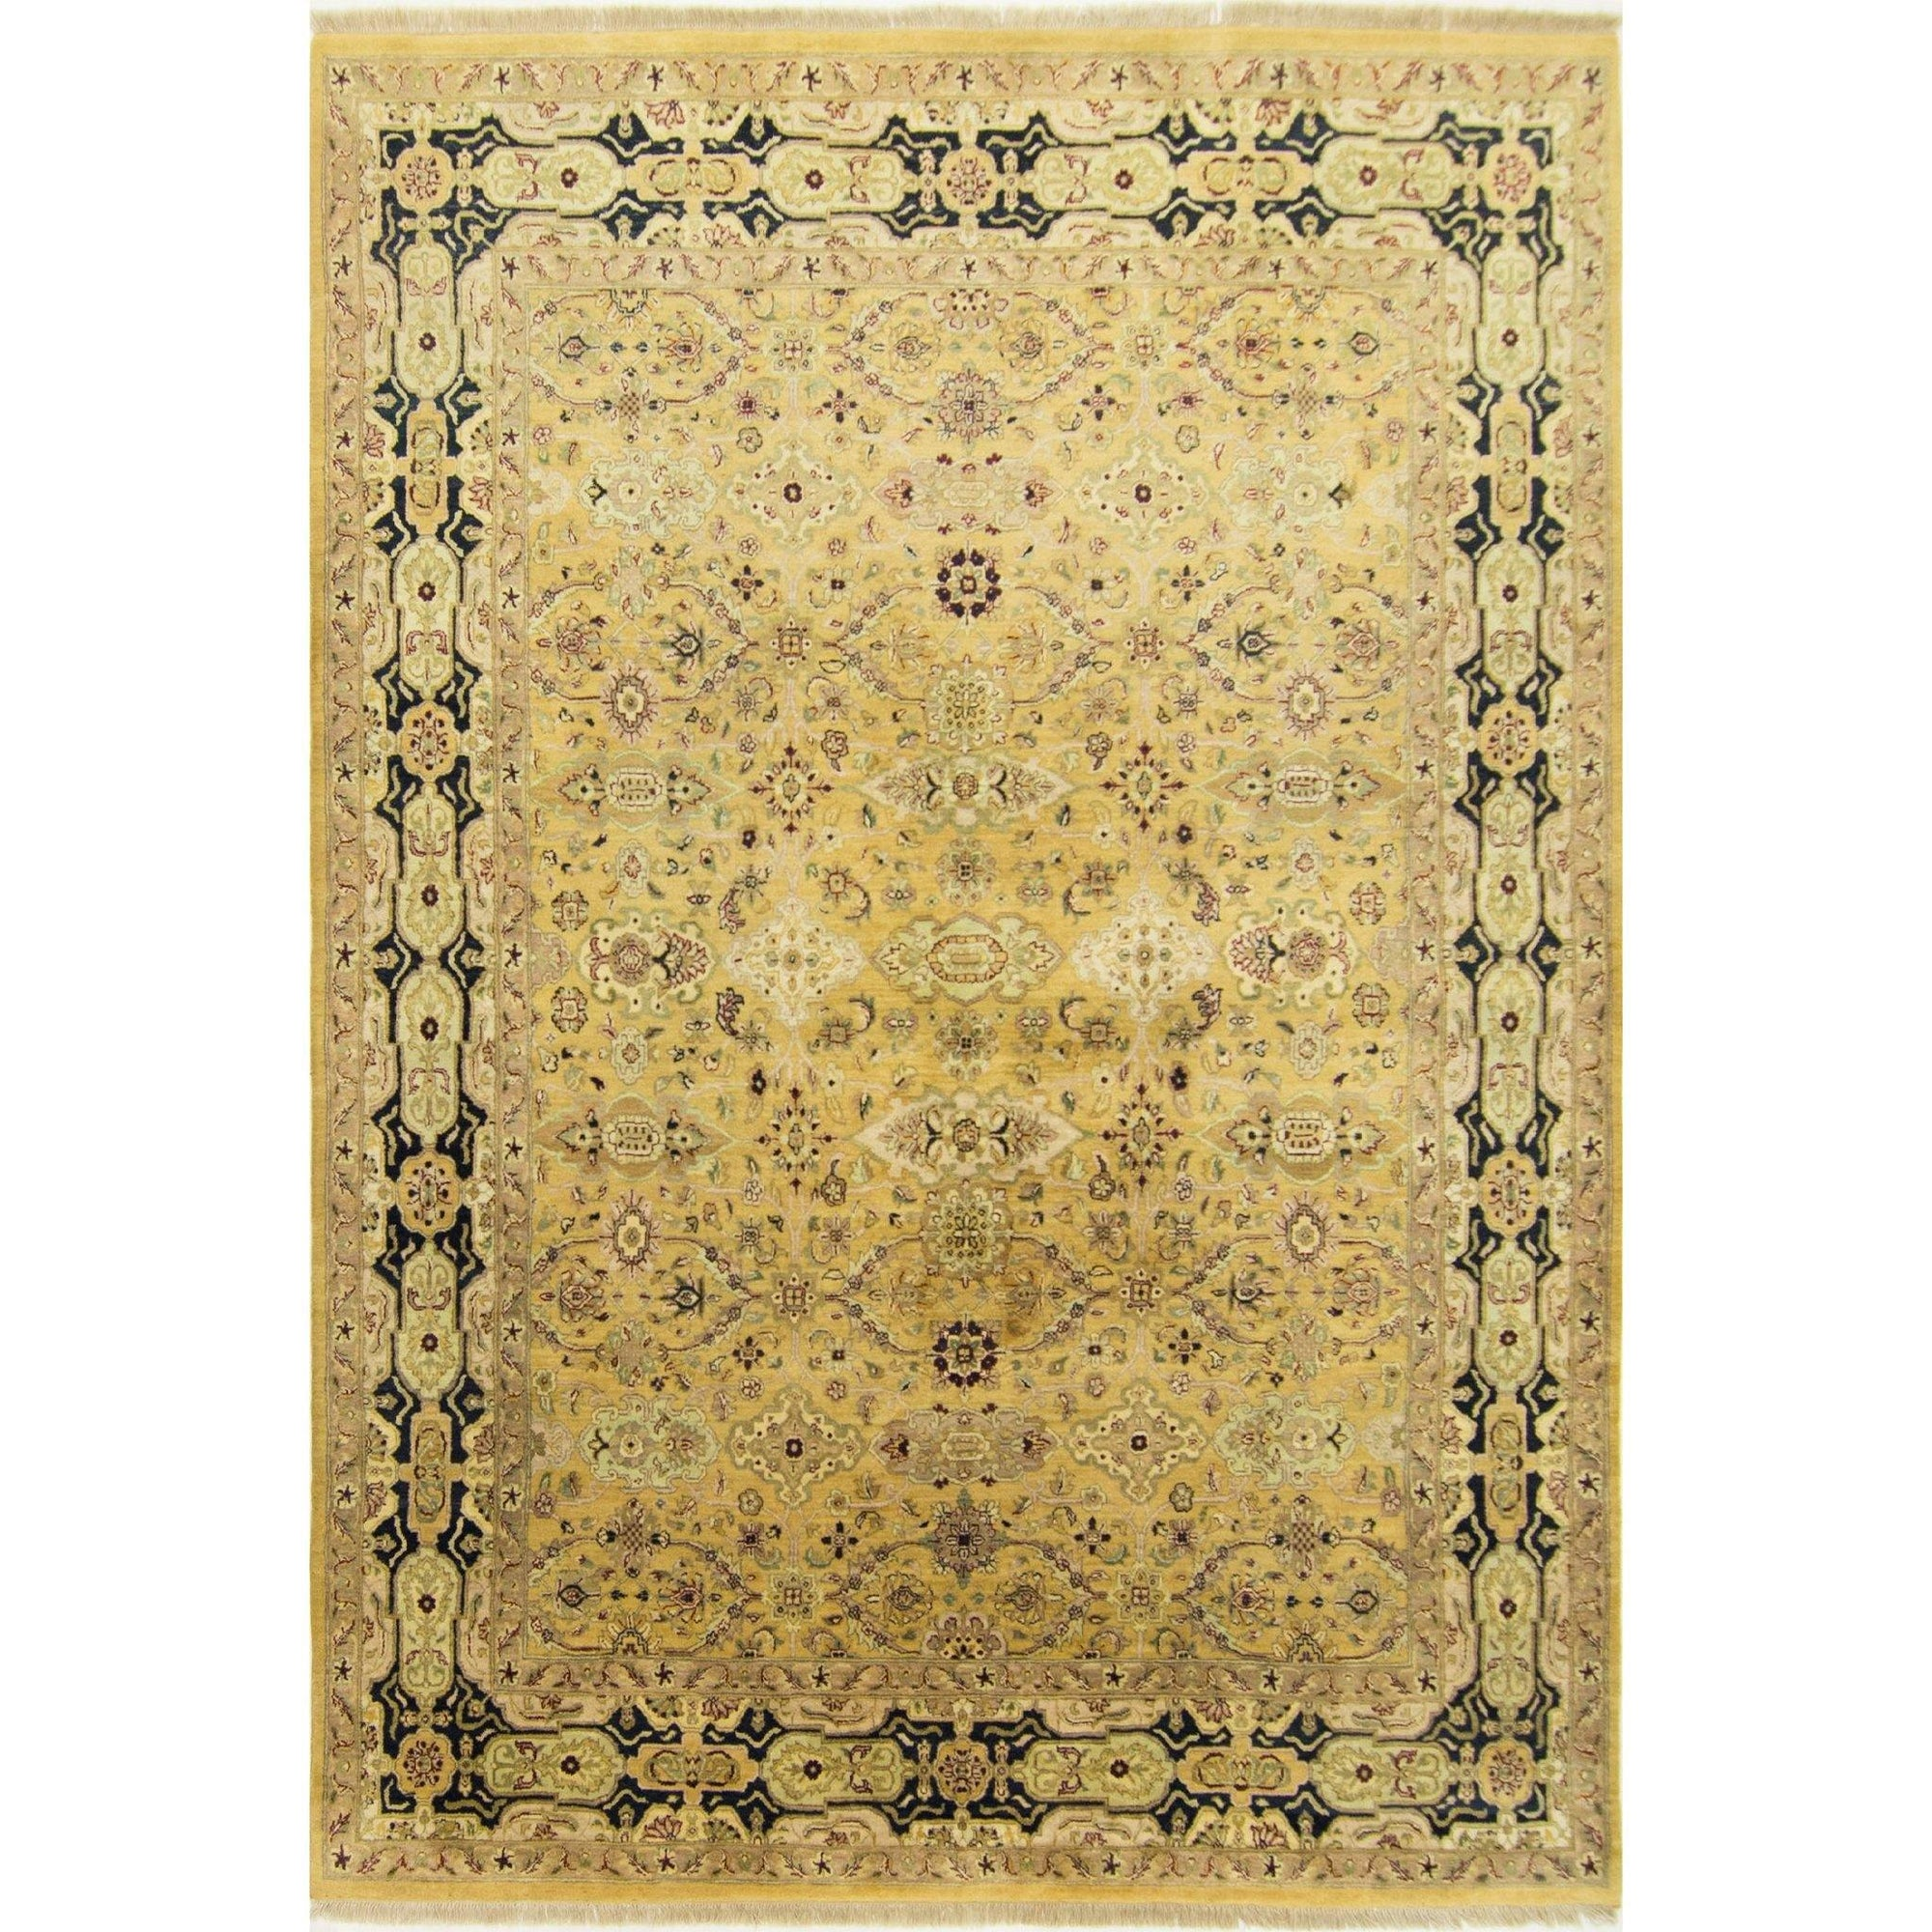 Fine Hand-knotted Wool Rug 275cm x 372cm Persian-Rug | House-of-Haghi | NewMarket | Auckland | NZ | Handmade Persian Rugs | Hand Knotted Persian Rugs